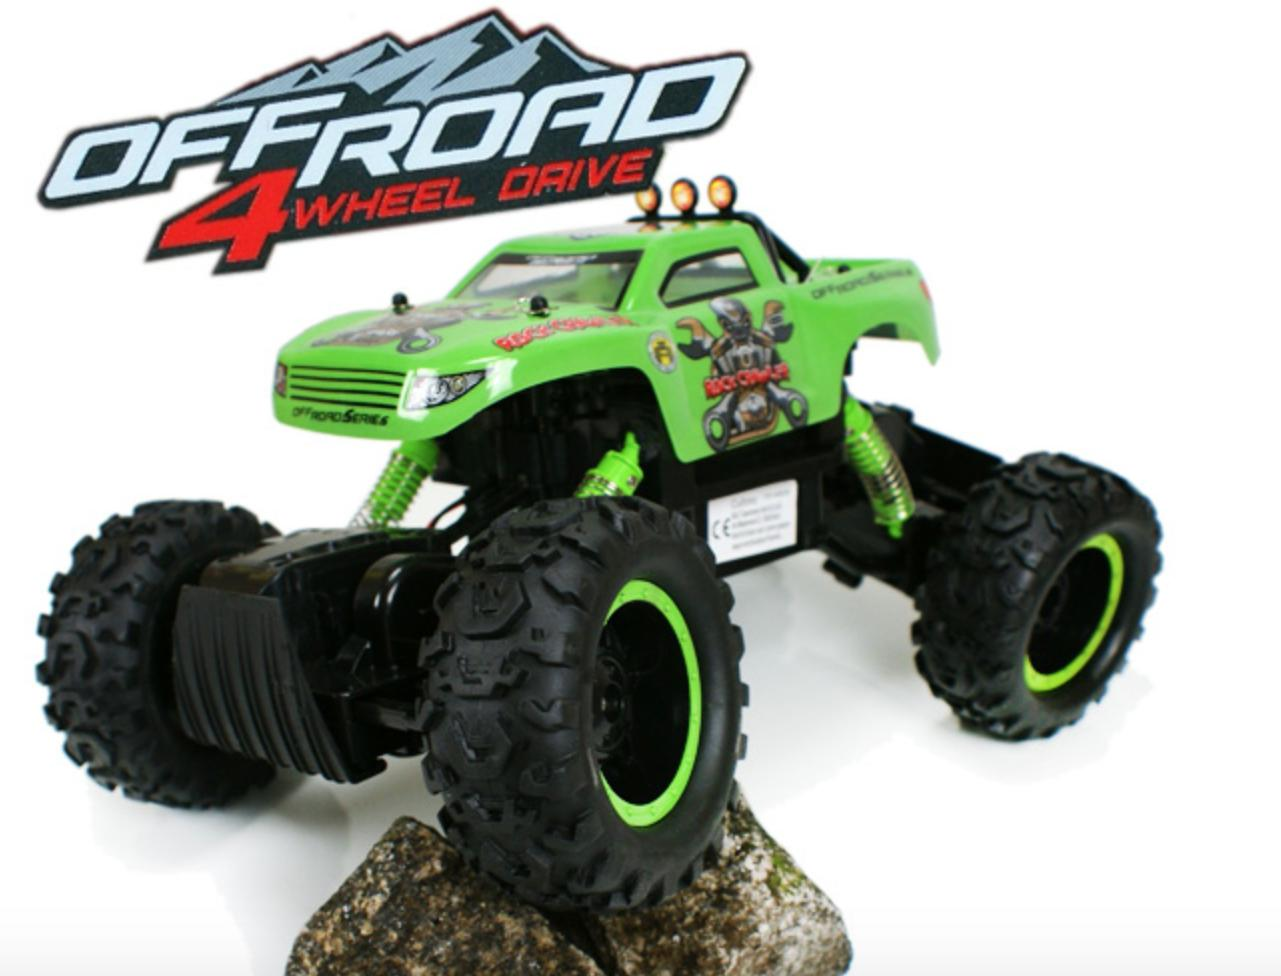 durable king helicopter with Nqd 1 12 Scale Electric Buggy Rc Rock Crawler Offer Samuderatrading I2445747 2007 01 Sale I on Nqd 1 12 Scale Electric Buggy Rc Rock Crawler Offer Samuderatrading I2445747 2007 01 Sale I additionally Eternal hellfire violates thermodynamics t shirt 235913516930523622 besides P Asian Glass Case Helicopter 1049048 furthermore 132025989539 besides Passenger Airplane Front View 1747.